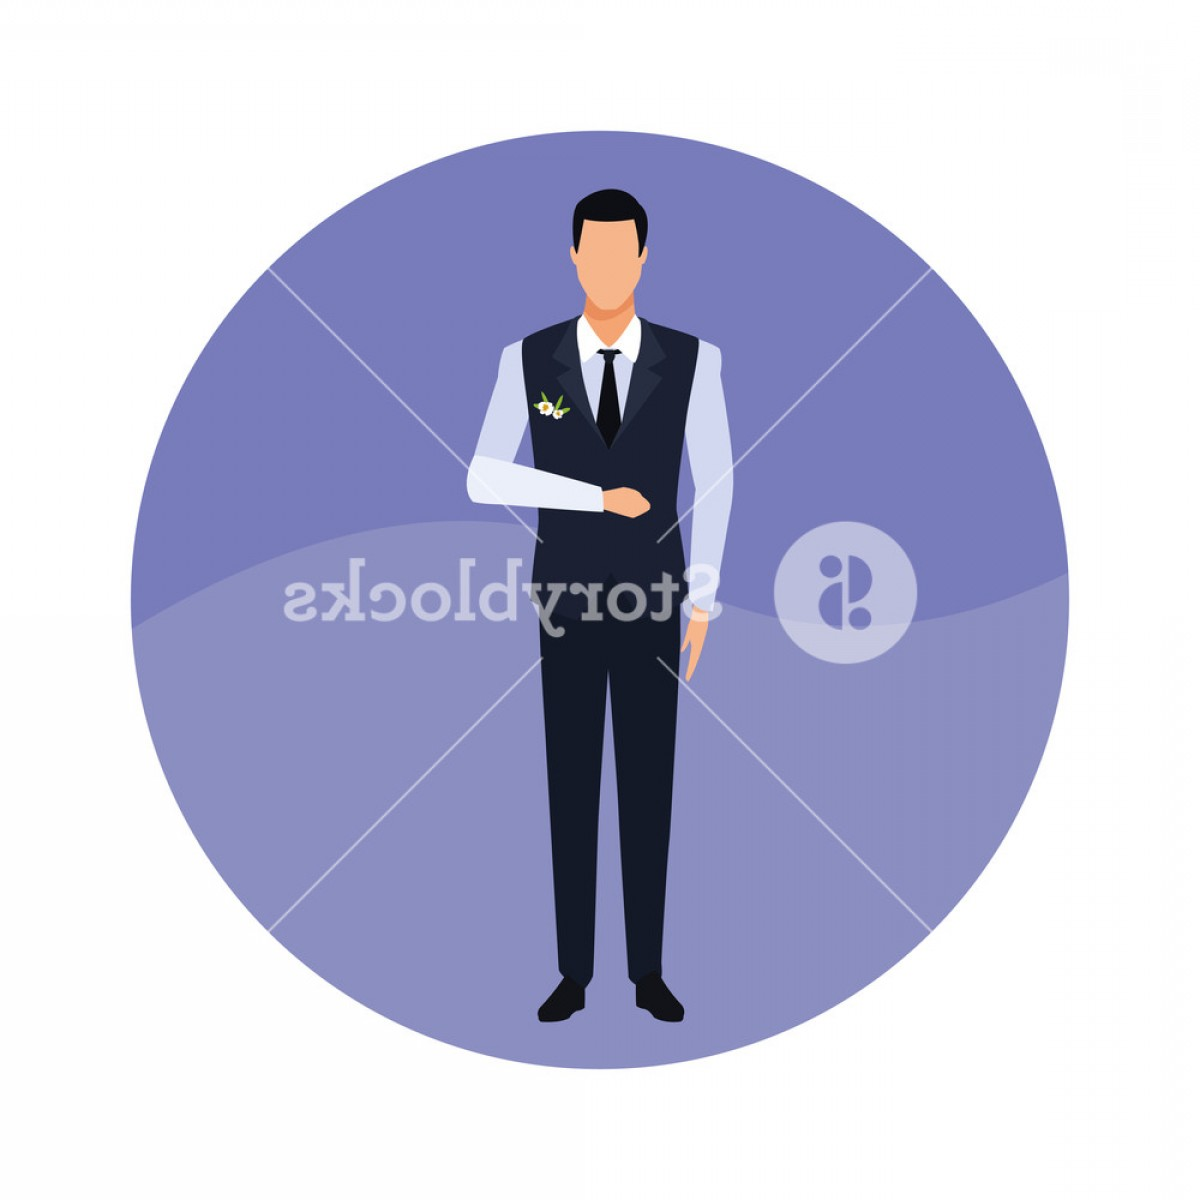 Gas Mask Suit And Tie Vector: Groom Kind Of Suit With Tie And Waistcoat Round Icon Vector Illustration Graphic Design Bgllkmjpkdry